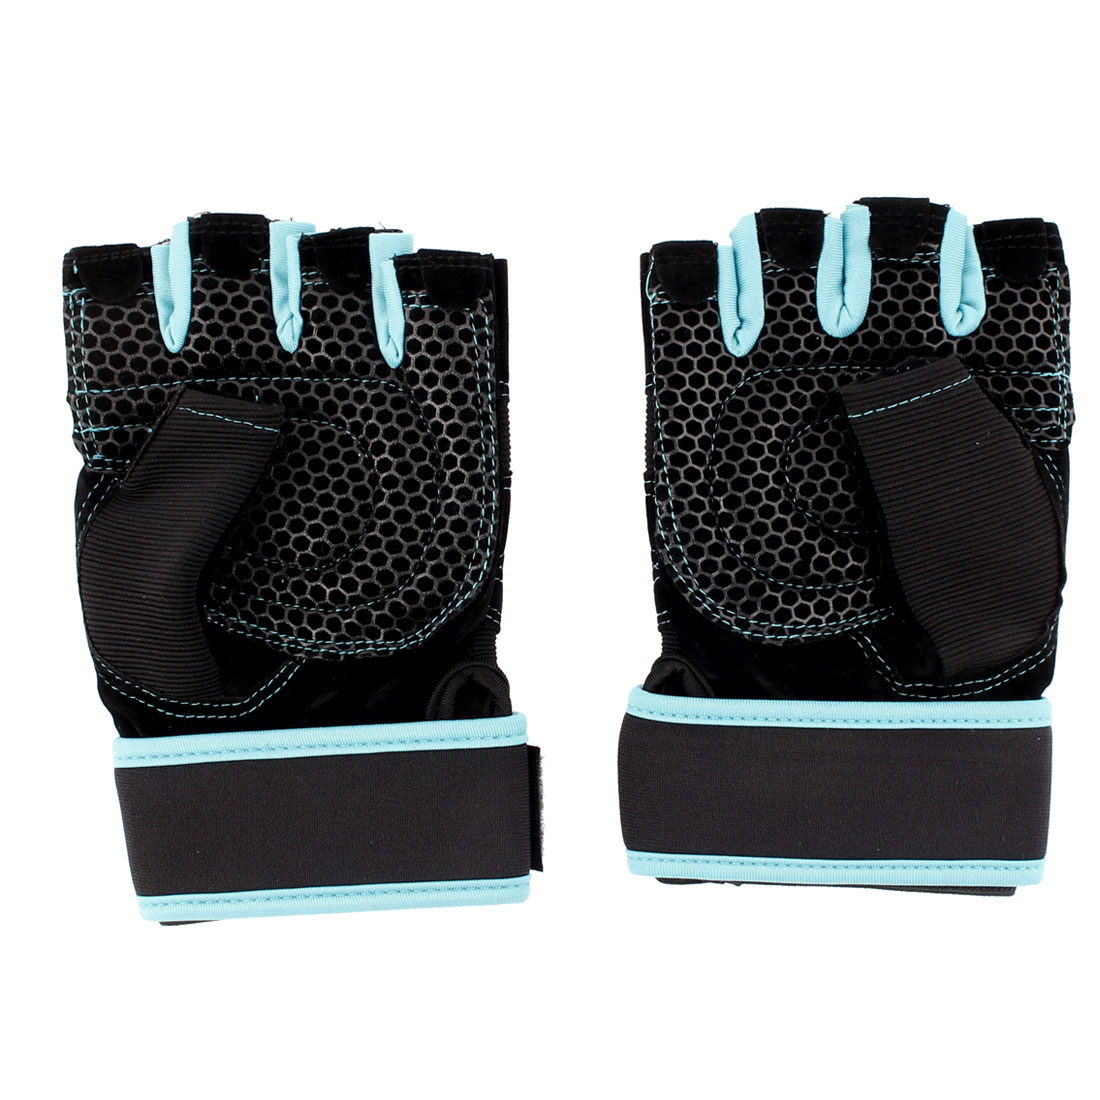 Cycling Driving Sports Fingerless Mesh Hole Braided Fitness Gloves Black M Size Pair